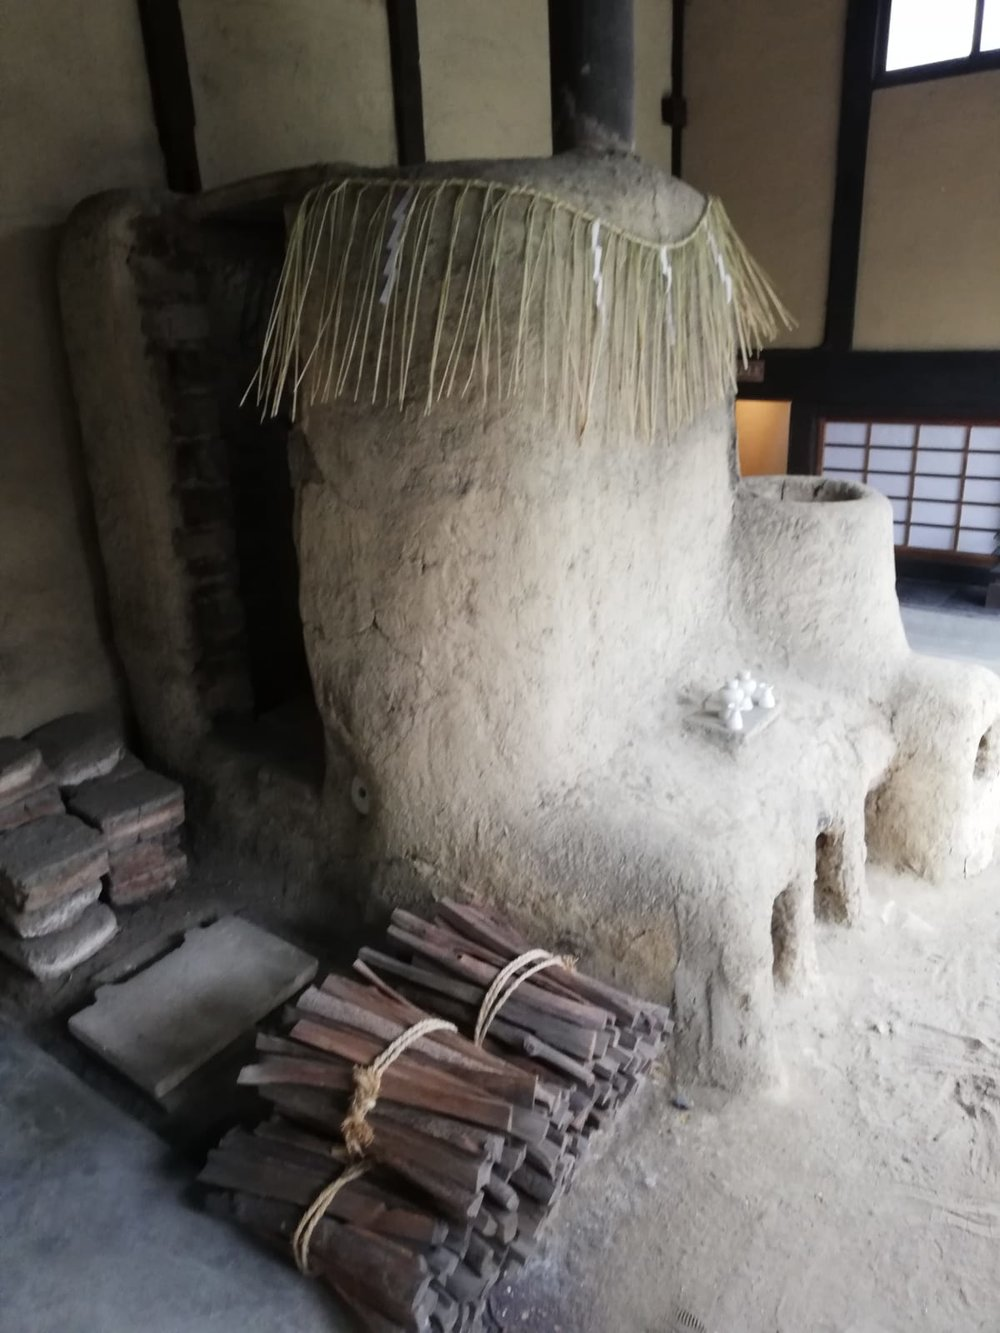 Kiln at the Kawai Kanjiro House